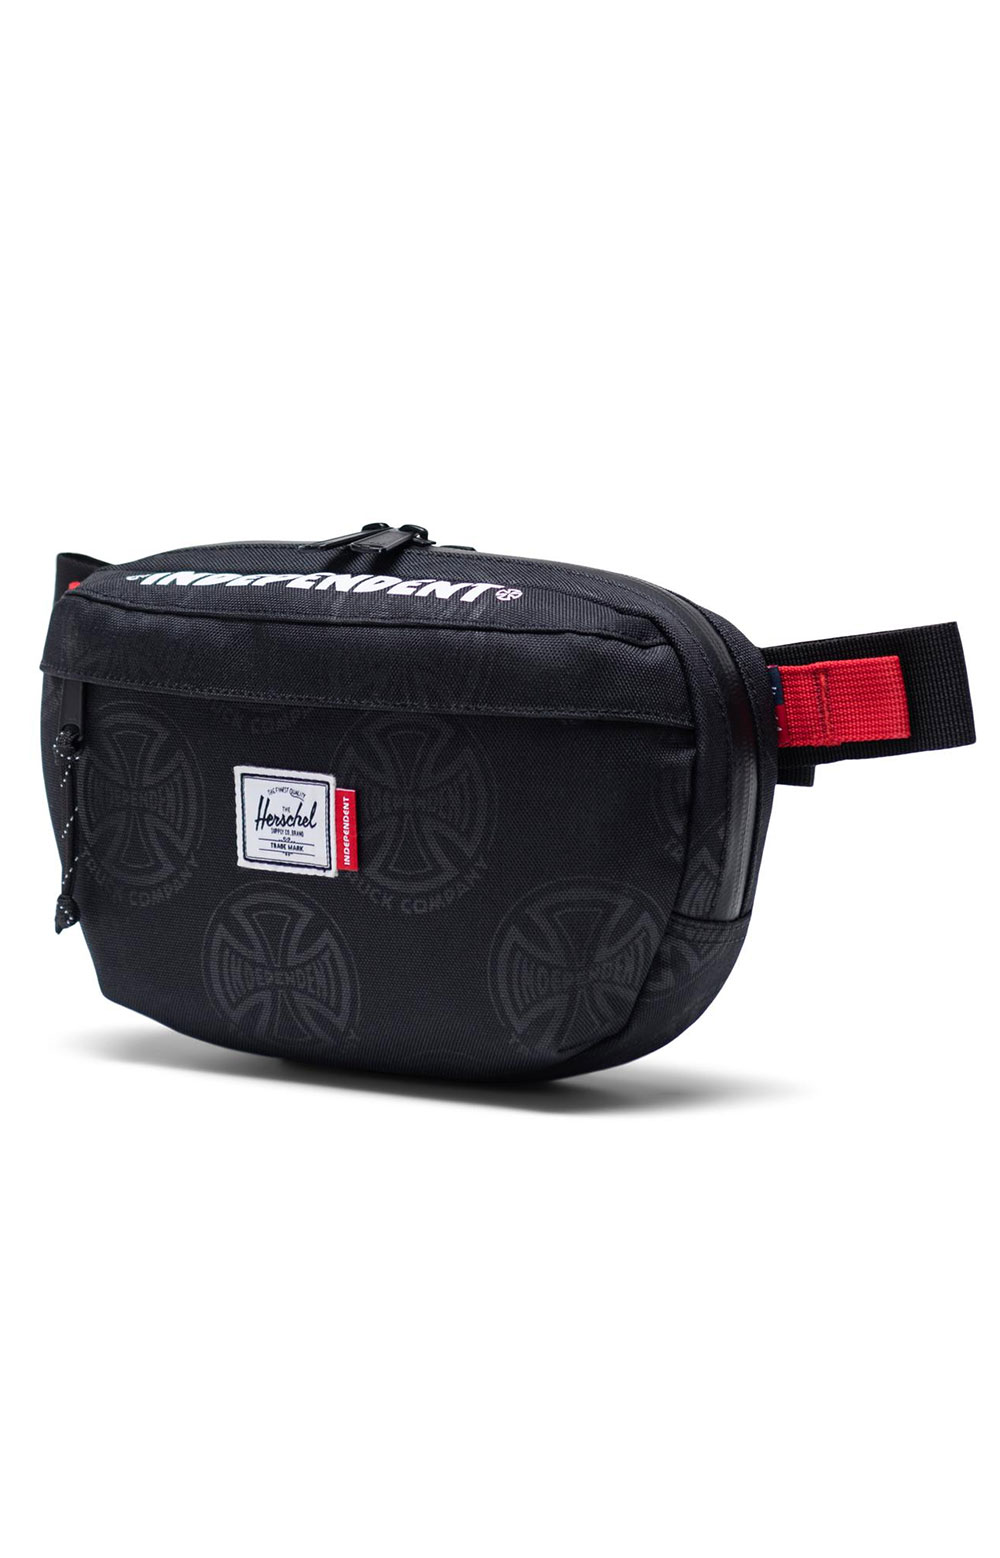 Nineteen Hip Pack - Independent Multi Cross Black 2